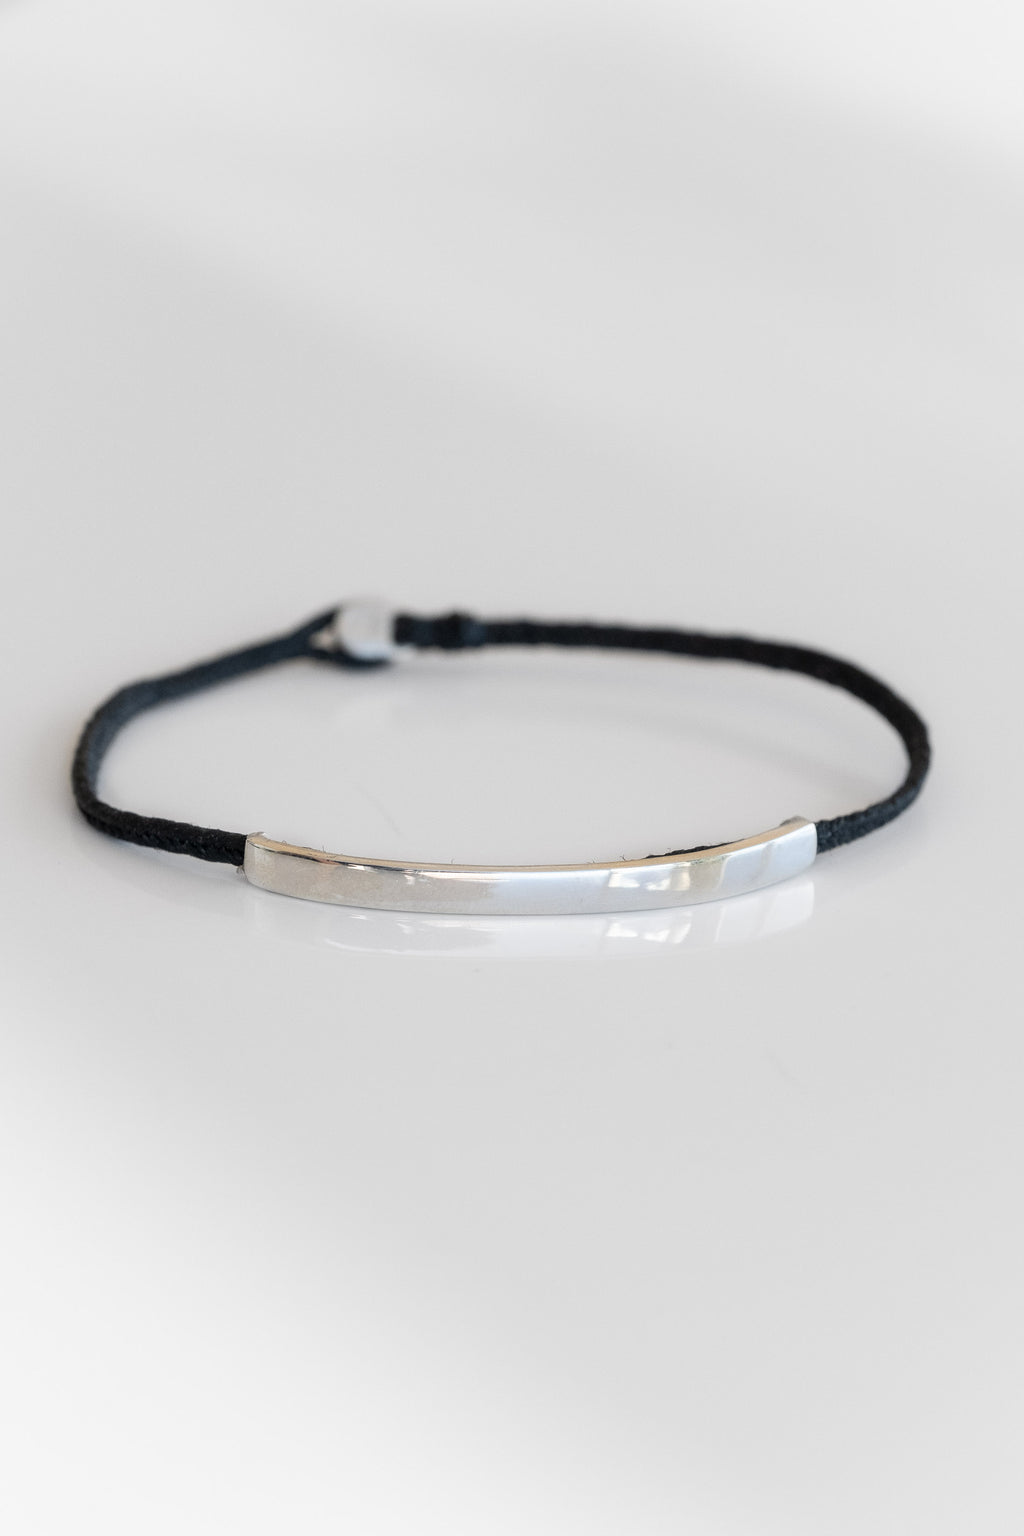 STERLING SILVER BLACK FISHTAIL ID BRACELET